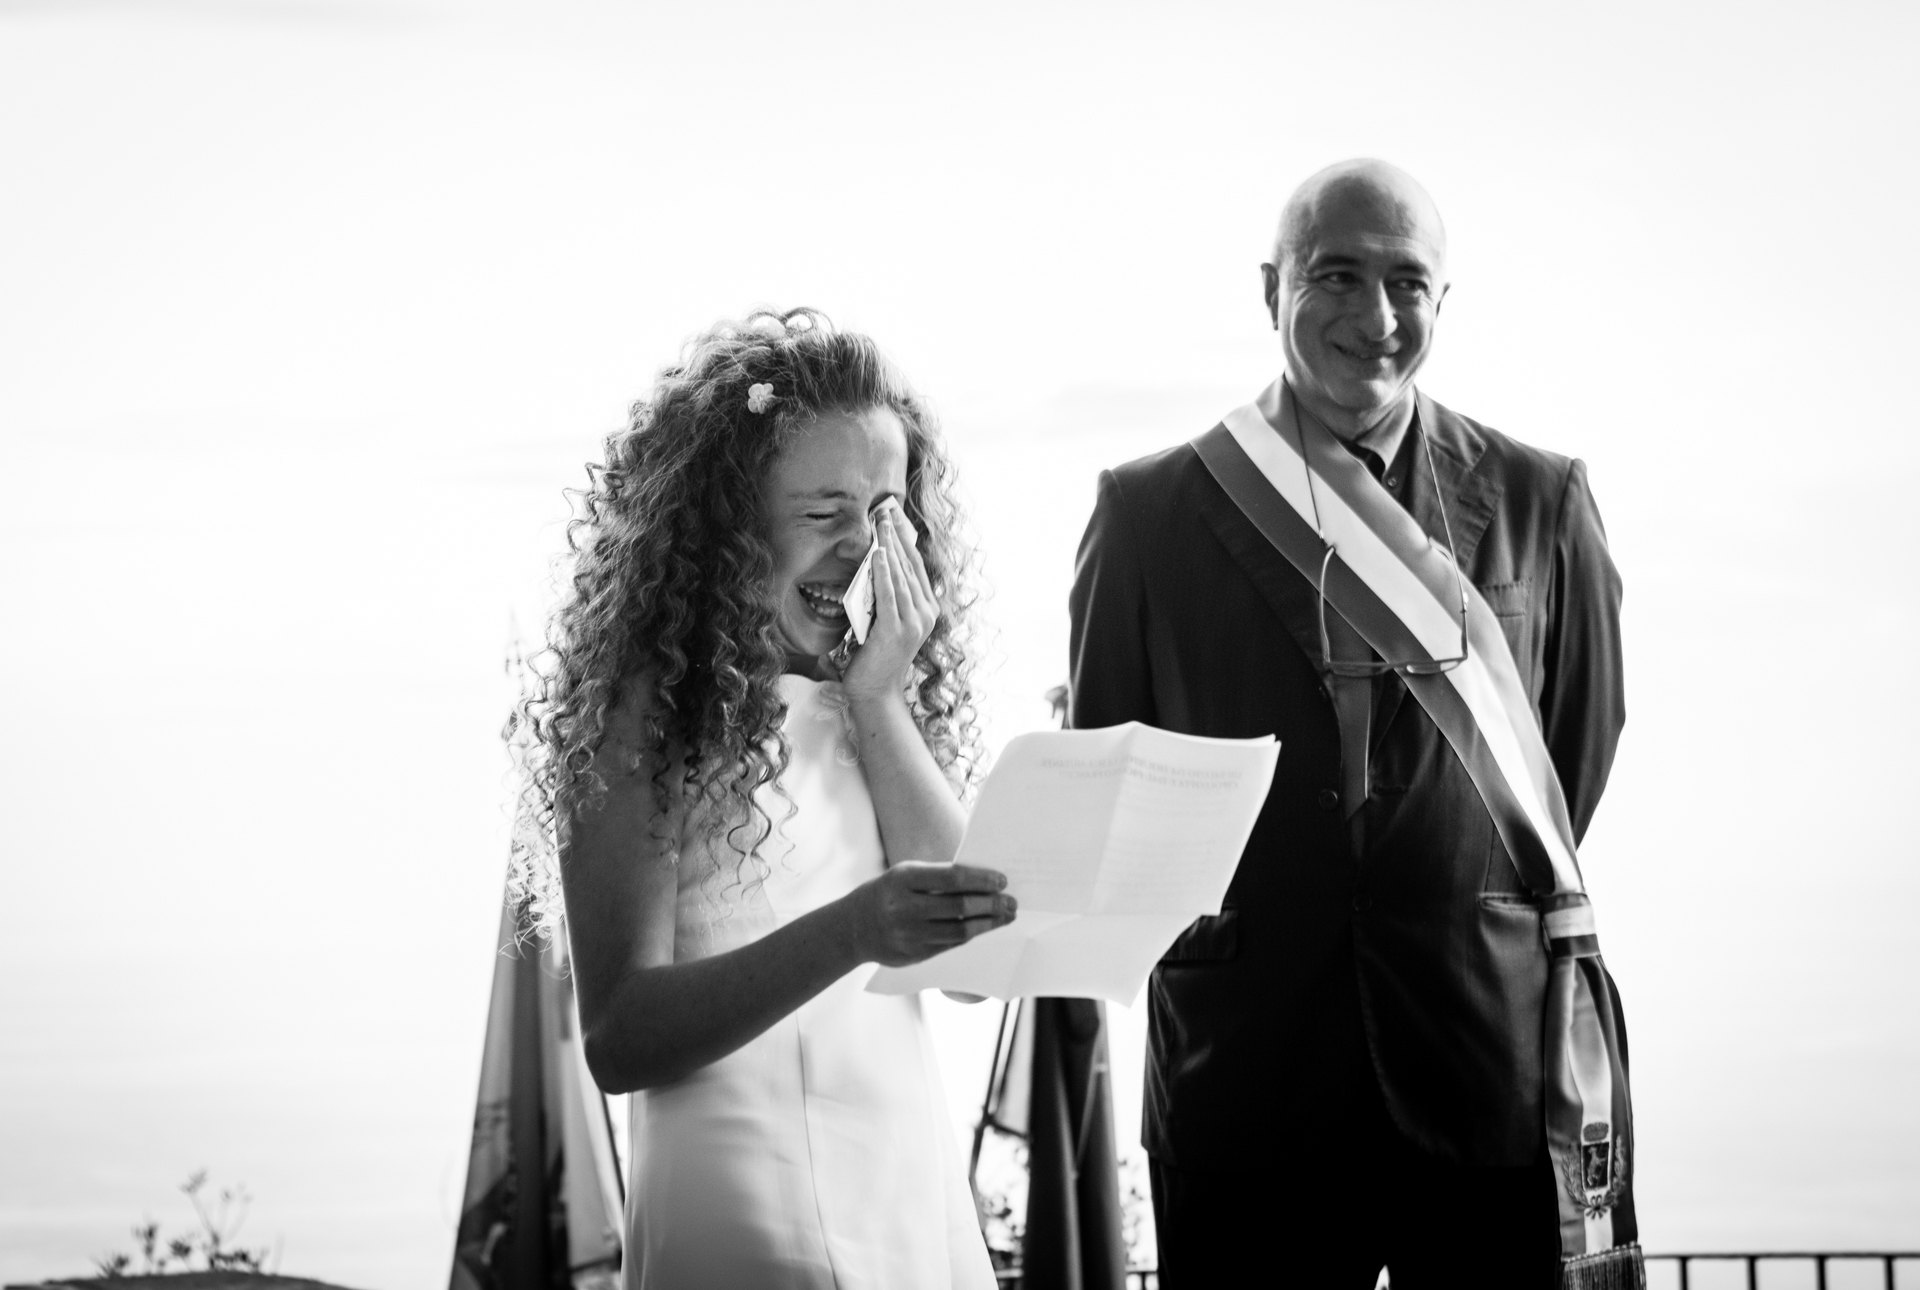 Capri Island Elopement Ceremony Photo from Italy | the daughter cries during the ceremony